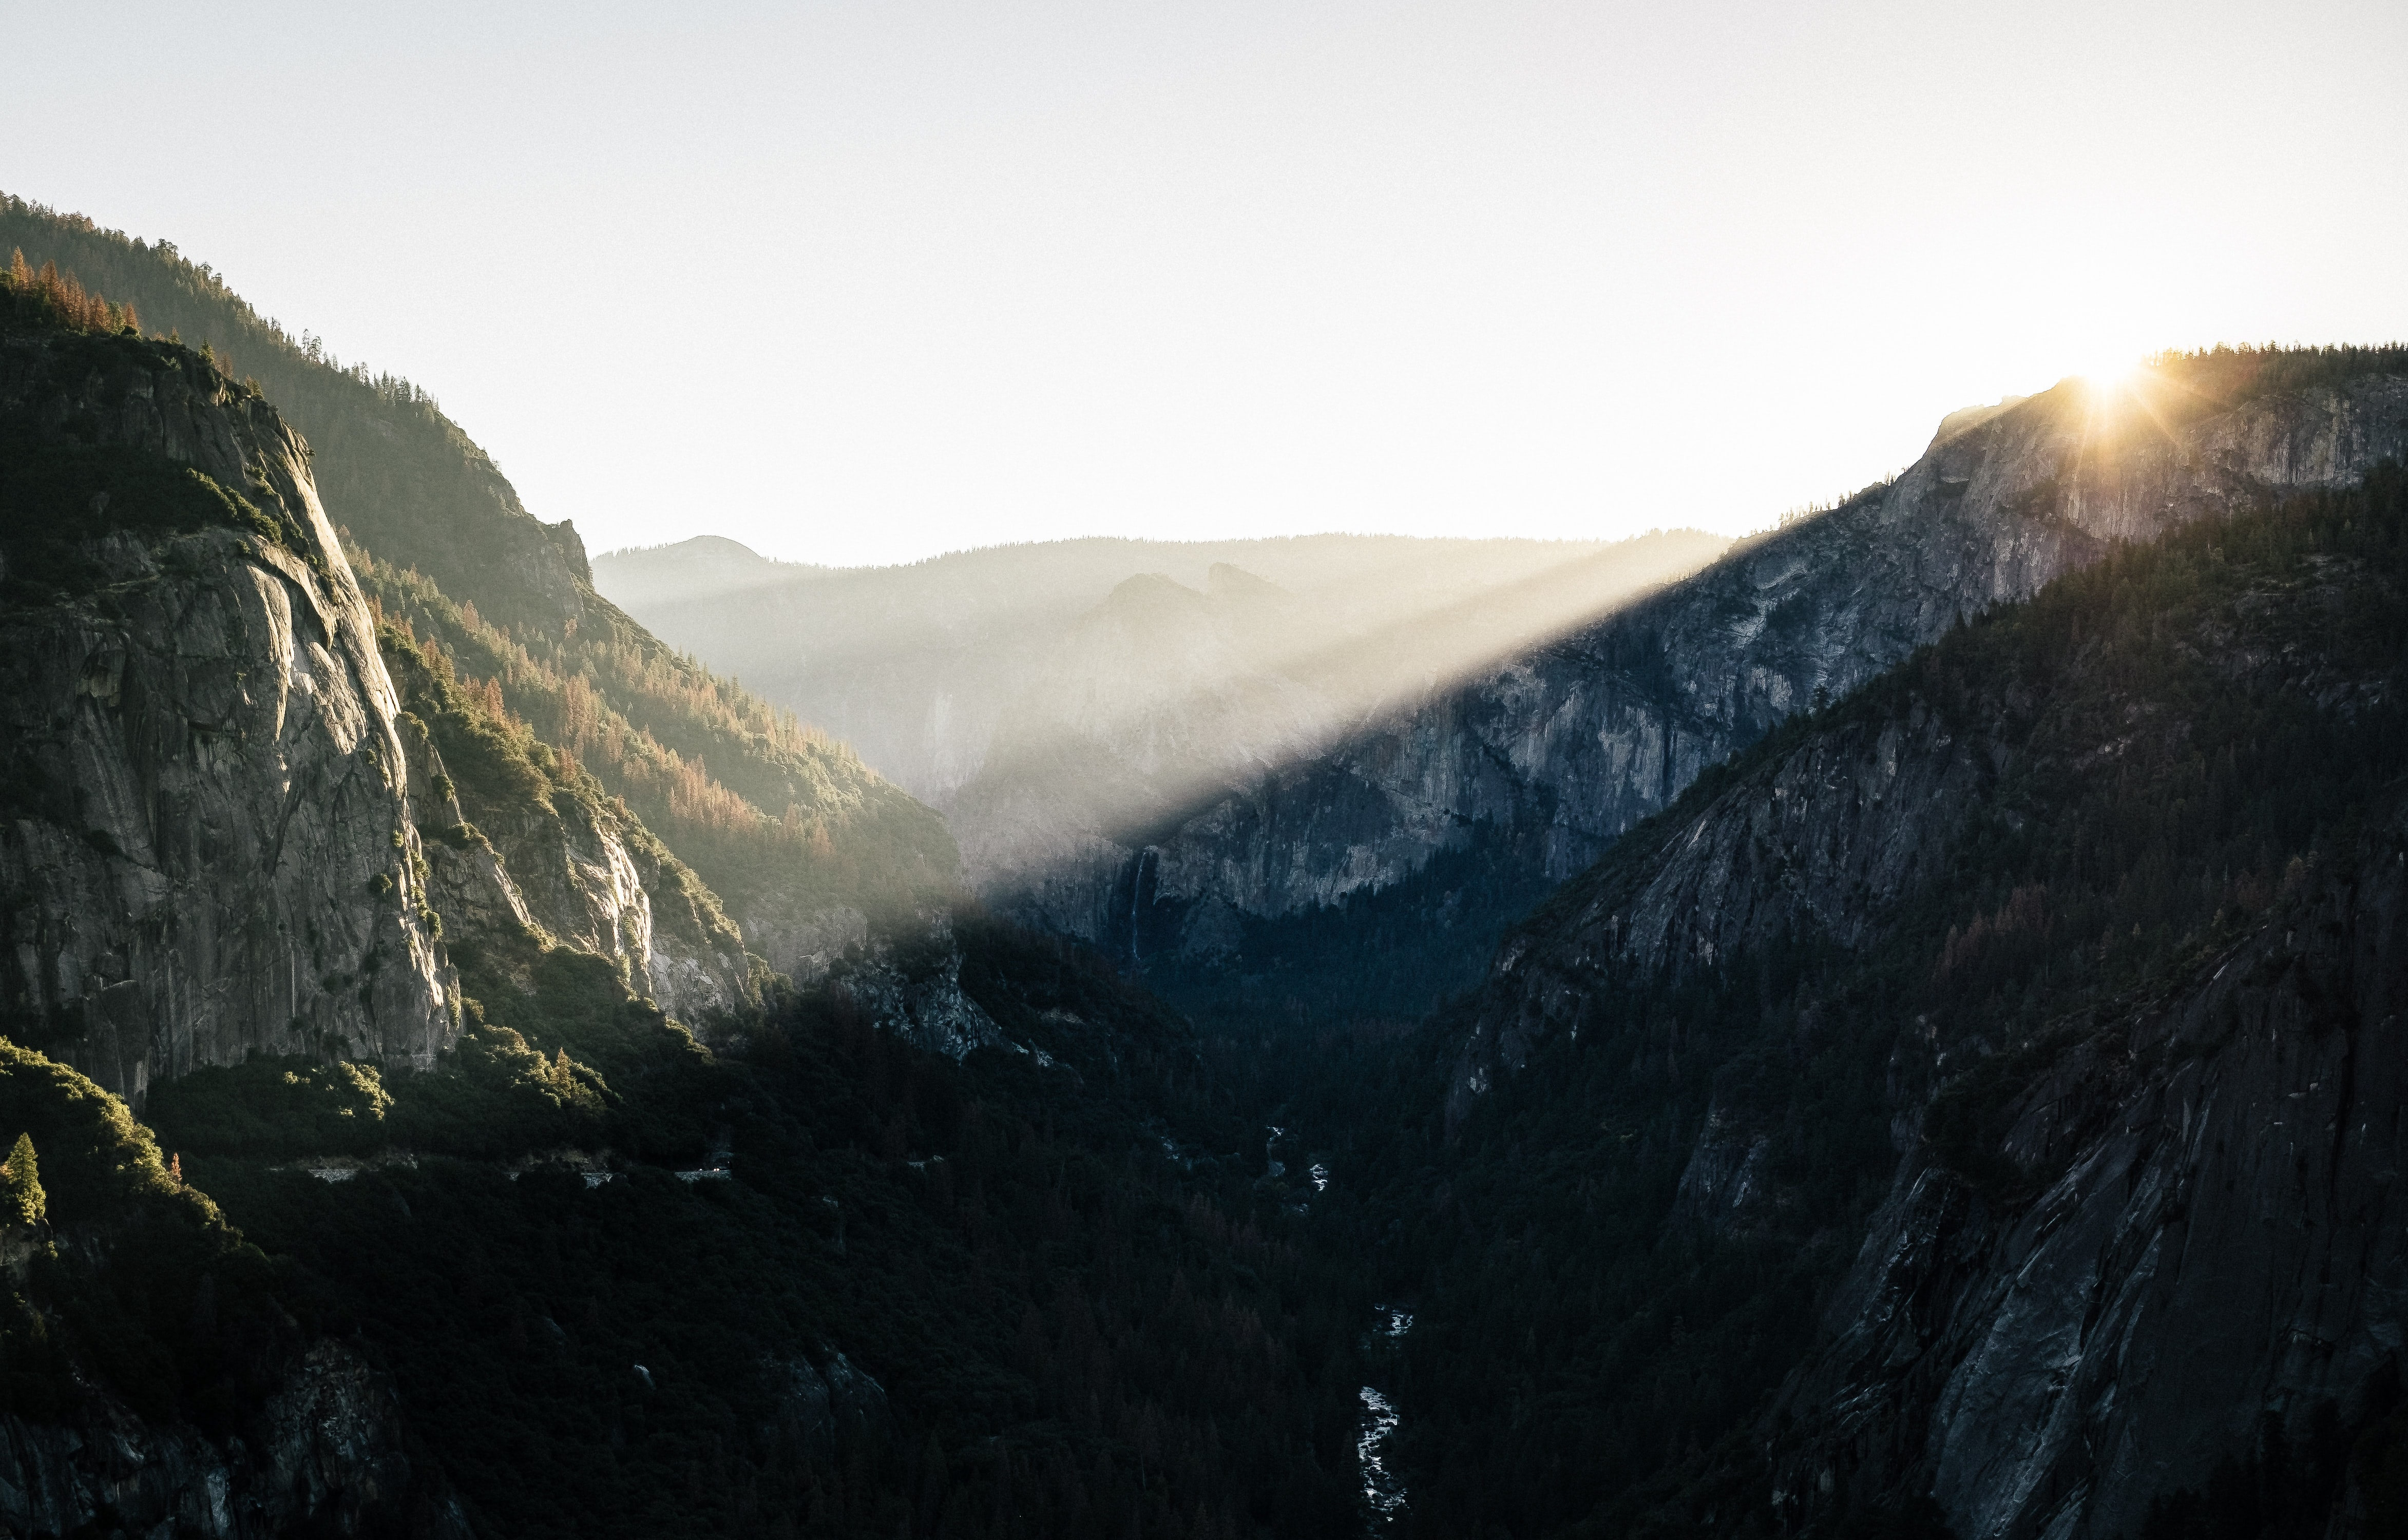 Sun's rays falling on the granite summits in Yosemite Valley during sunrise